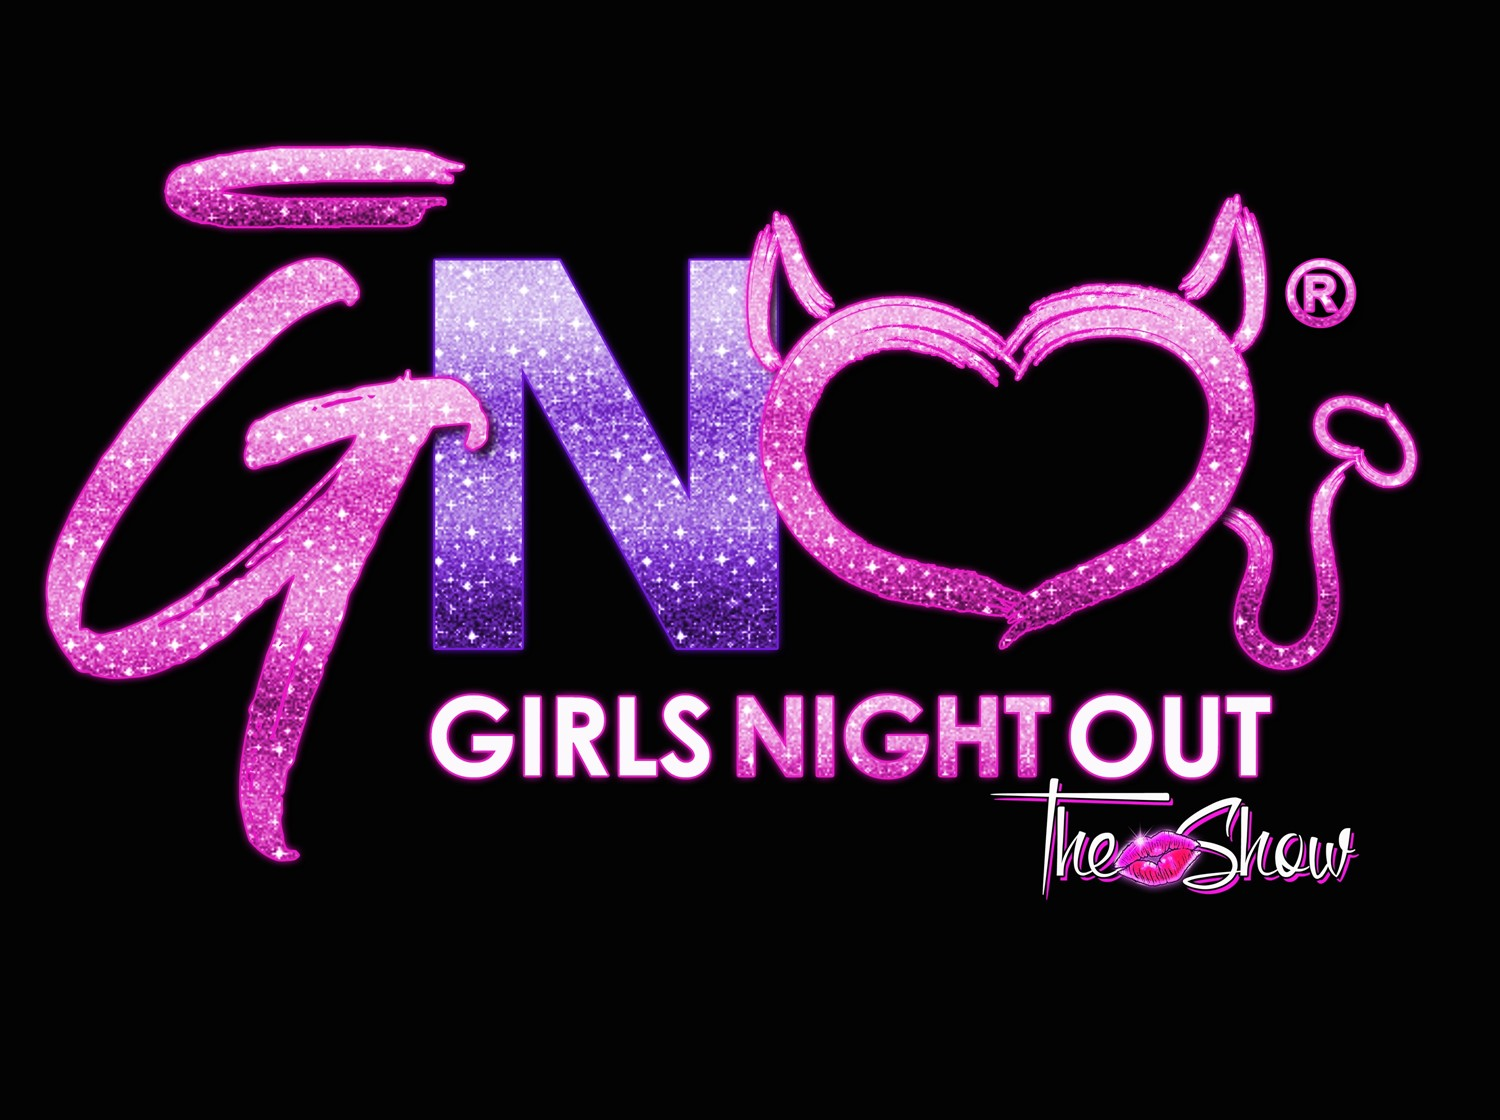 Mix Bricktown (21+) Detroit, MI on Apr 20, 20:00@Mix Bricktown - Buy tickets and Get information on Girls Night Out the Show tickets.girlsnightouttheshow.com